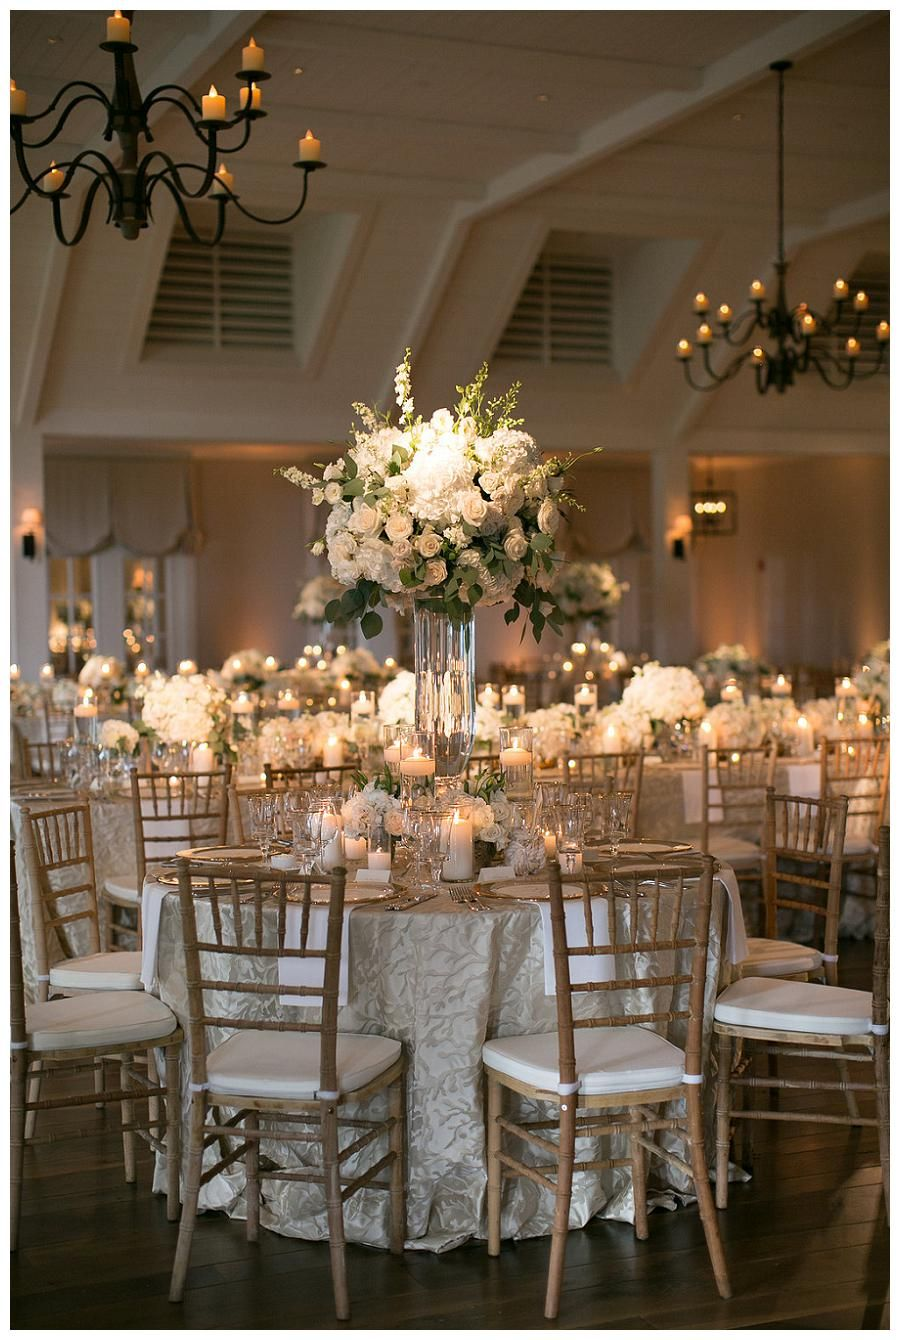 white and gold wedding table decorations 36 white wedding decoration ideas wedding decorations 1298